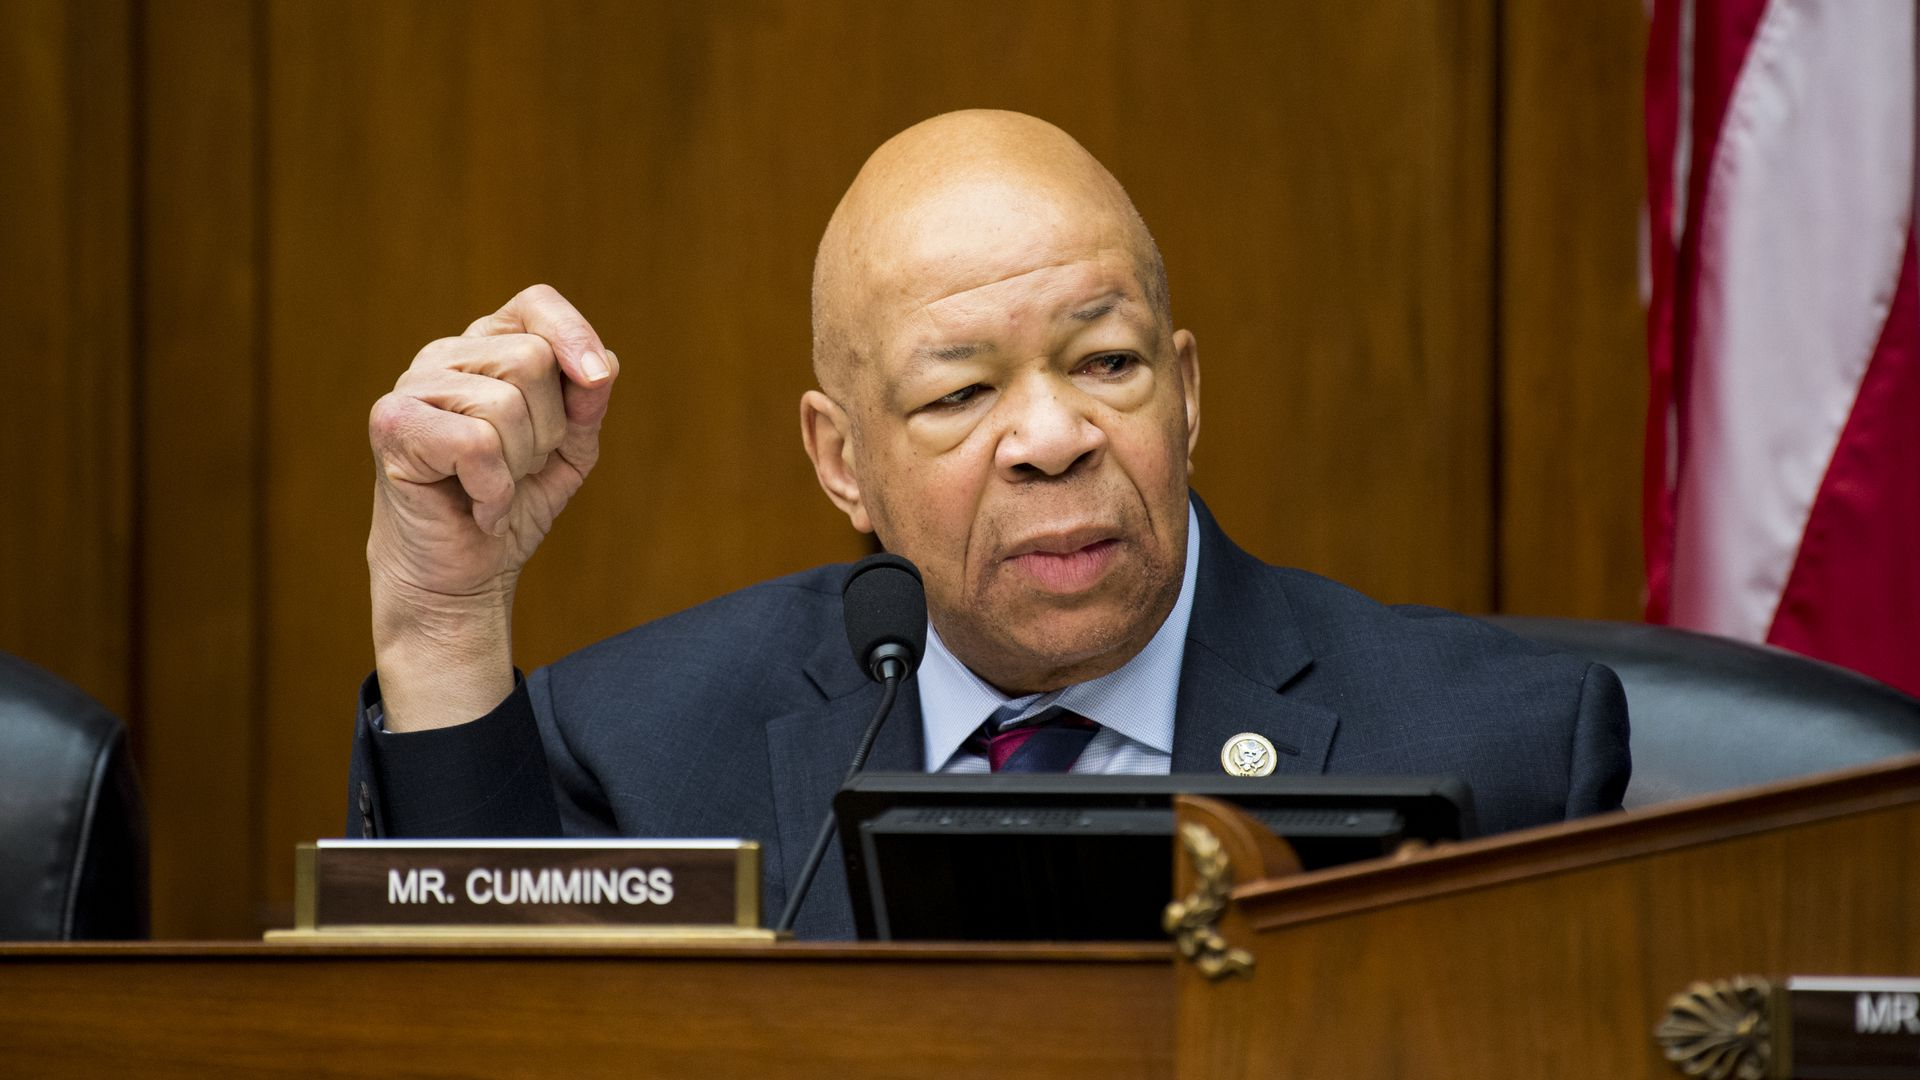 House Oversight and Government Reform Committee Chairman, Elijah Cummings, (D-Md.)